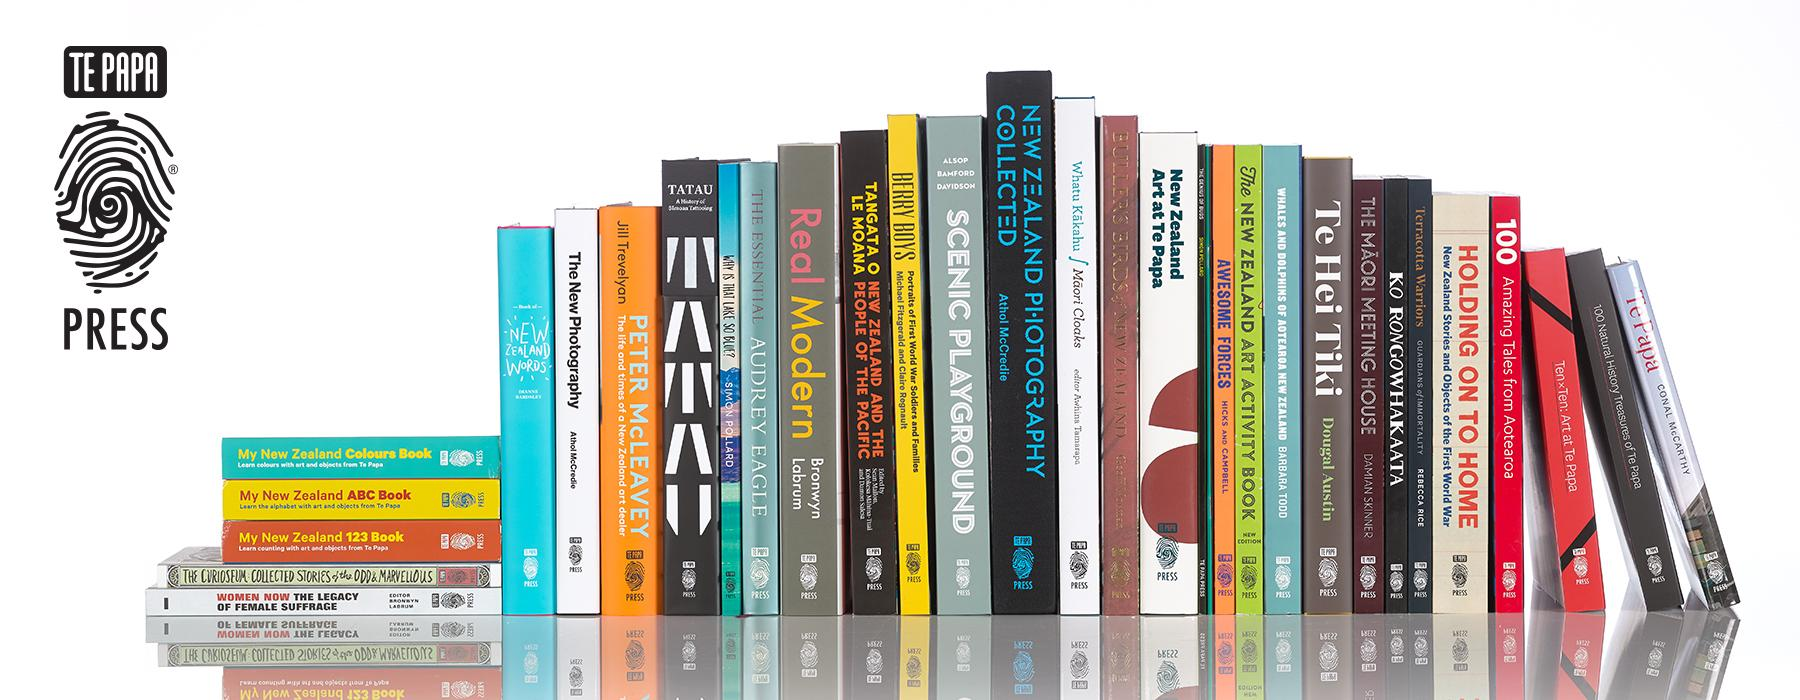 Selection of Te Papa Press titles, 2019. Photograph by Maarten Holl. Te Papa.